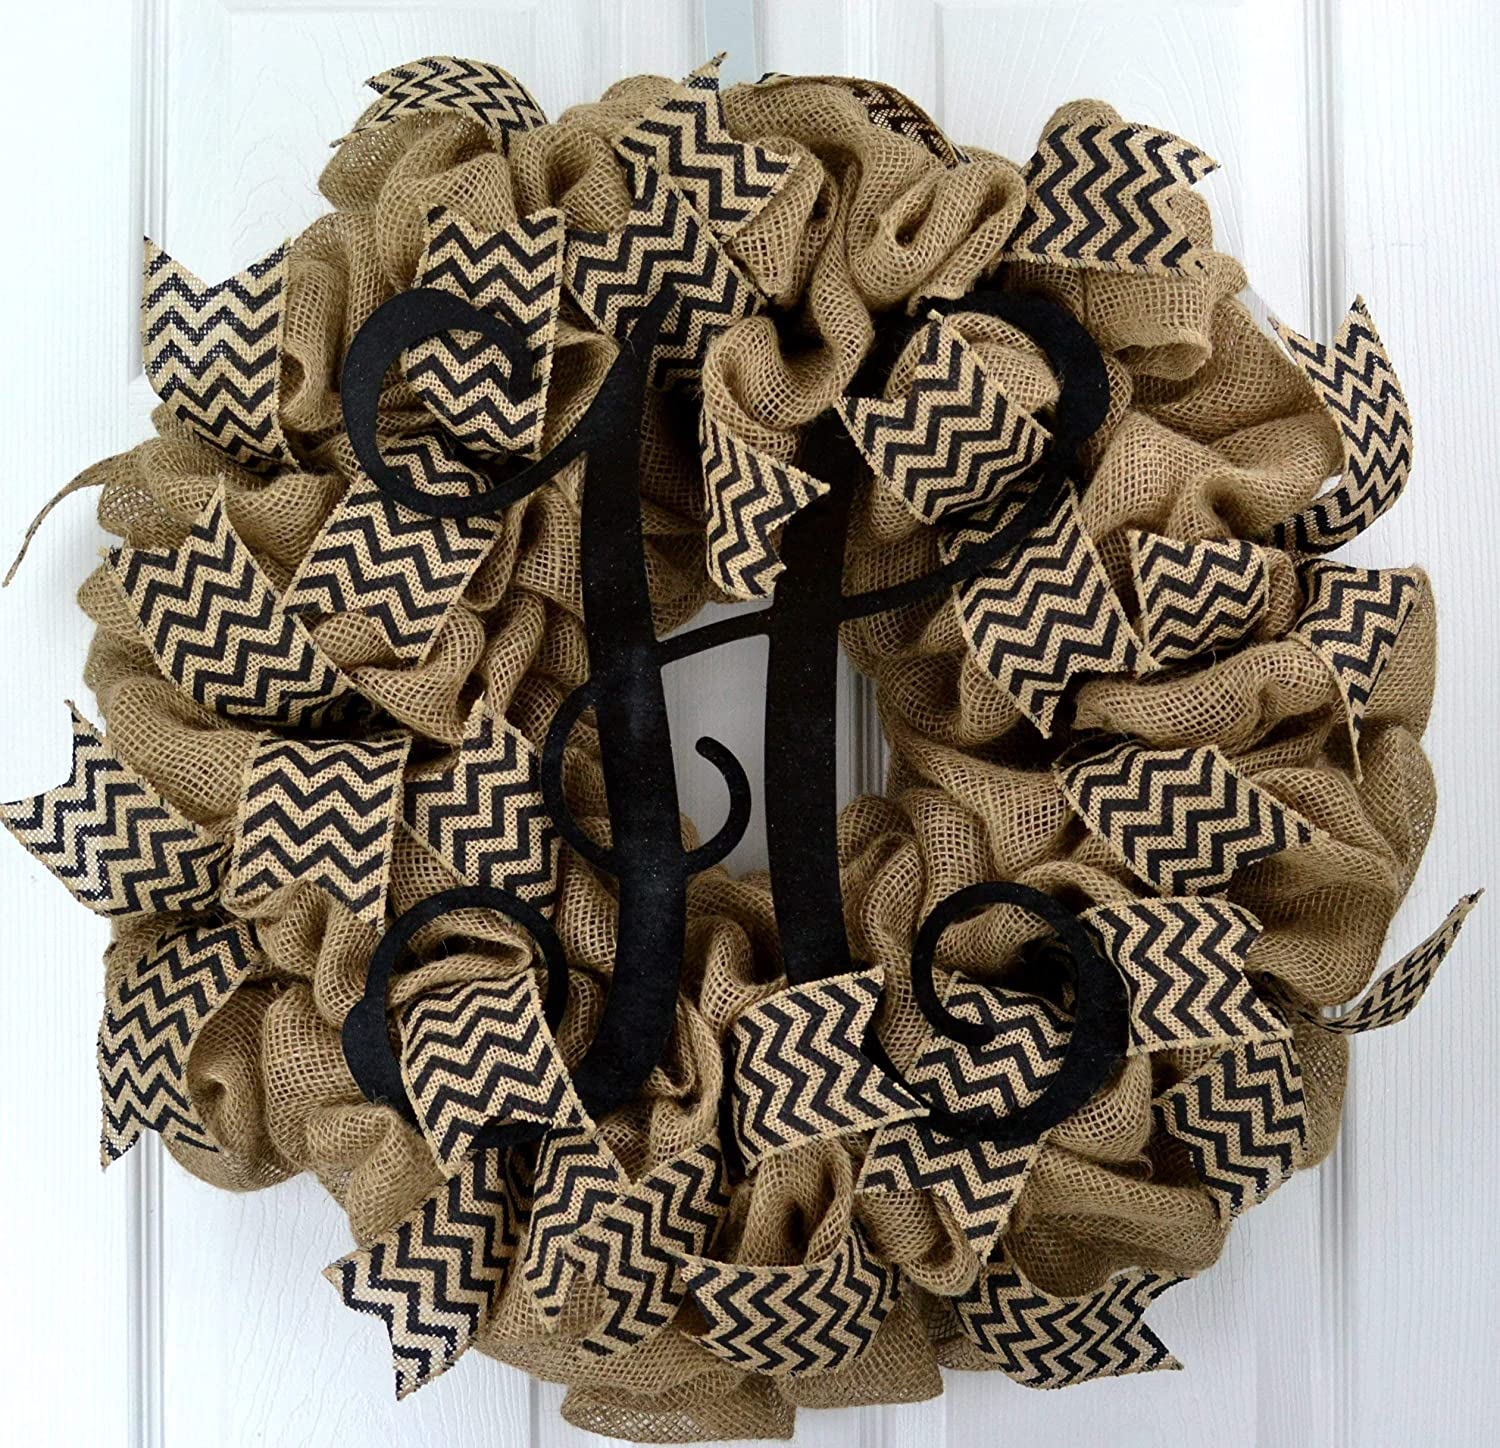 Personalized initial burlap wreath with animal print.